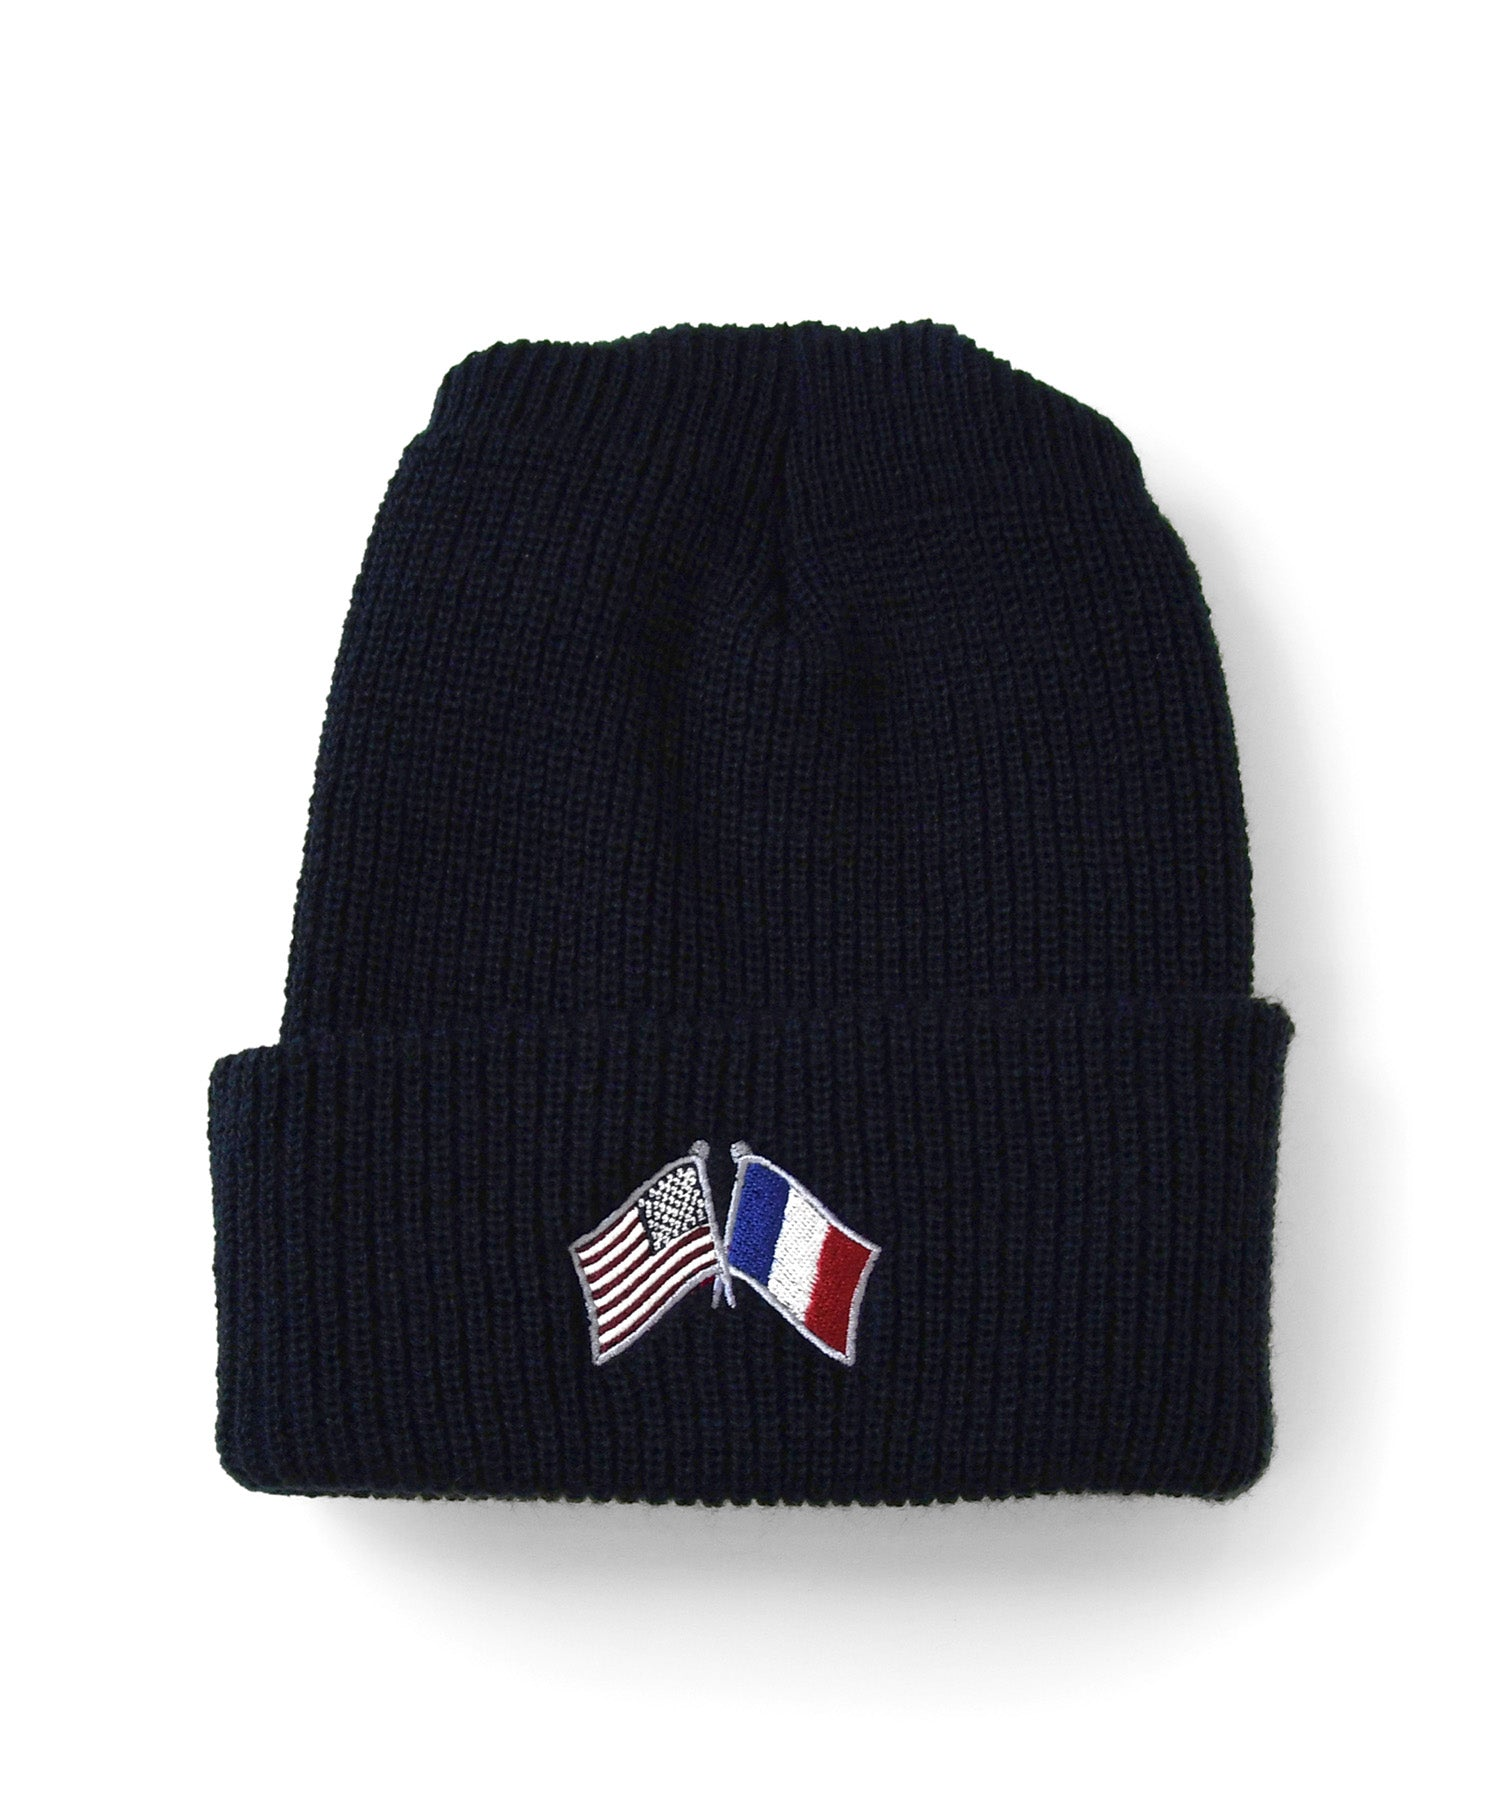 Lafayette CROSS FLAG LONG BEANIE LS201405 NAVY